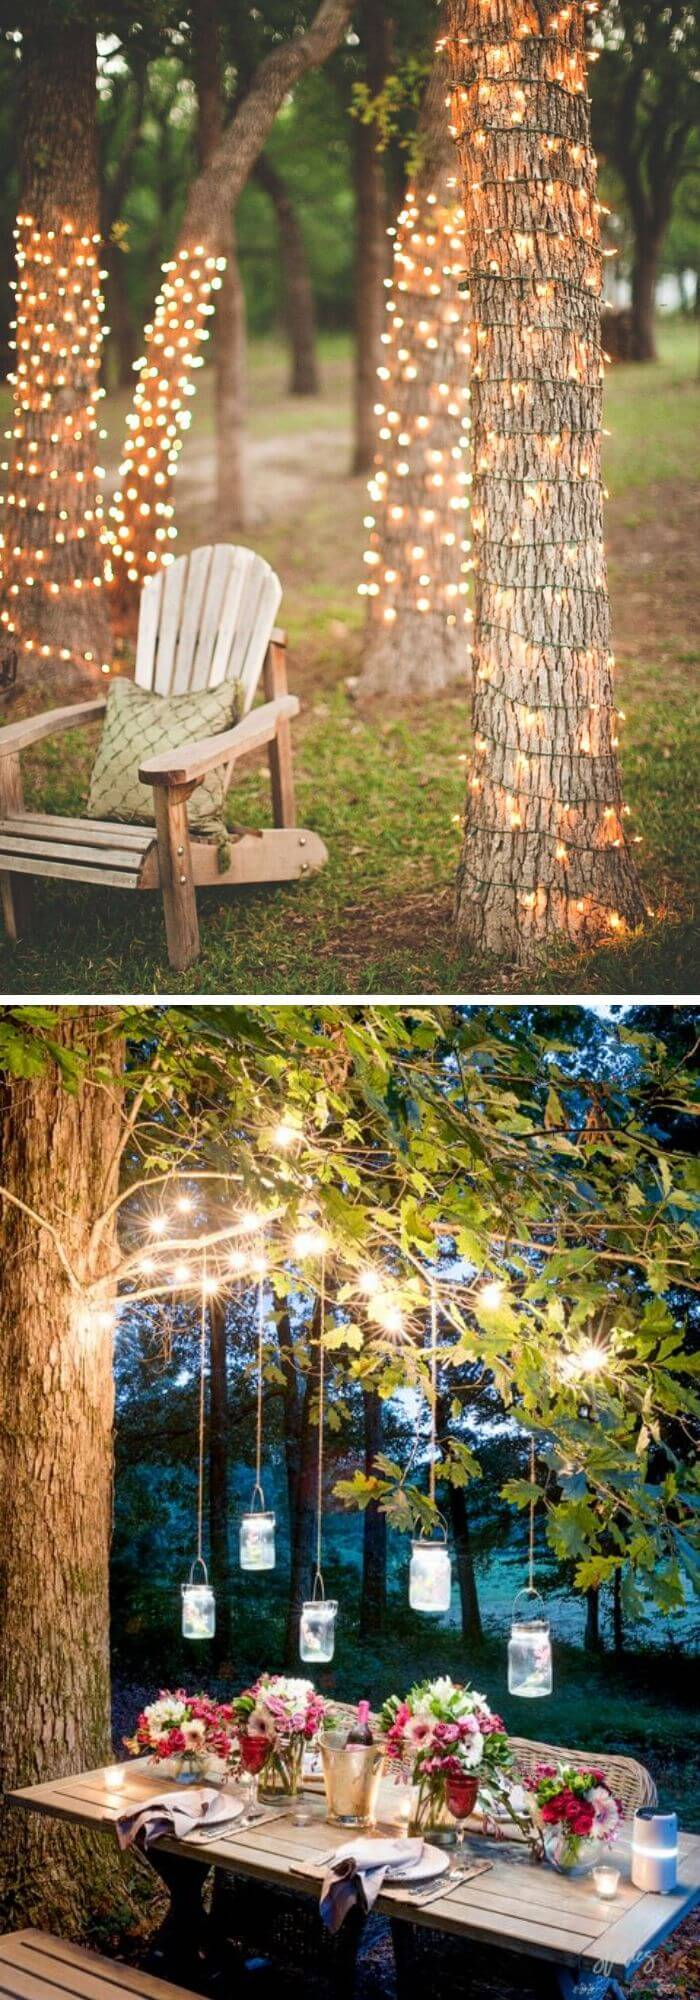 A Backyard with Lightened up Trees